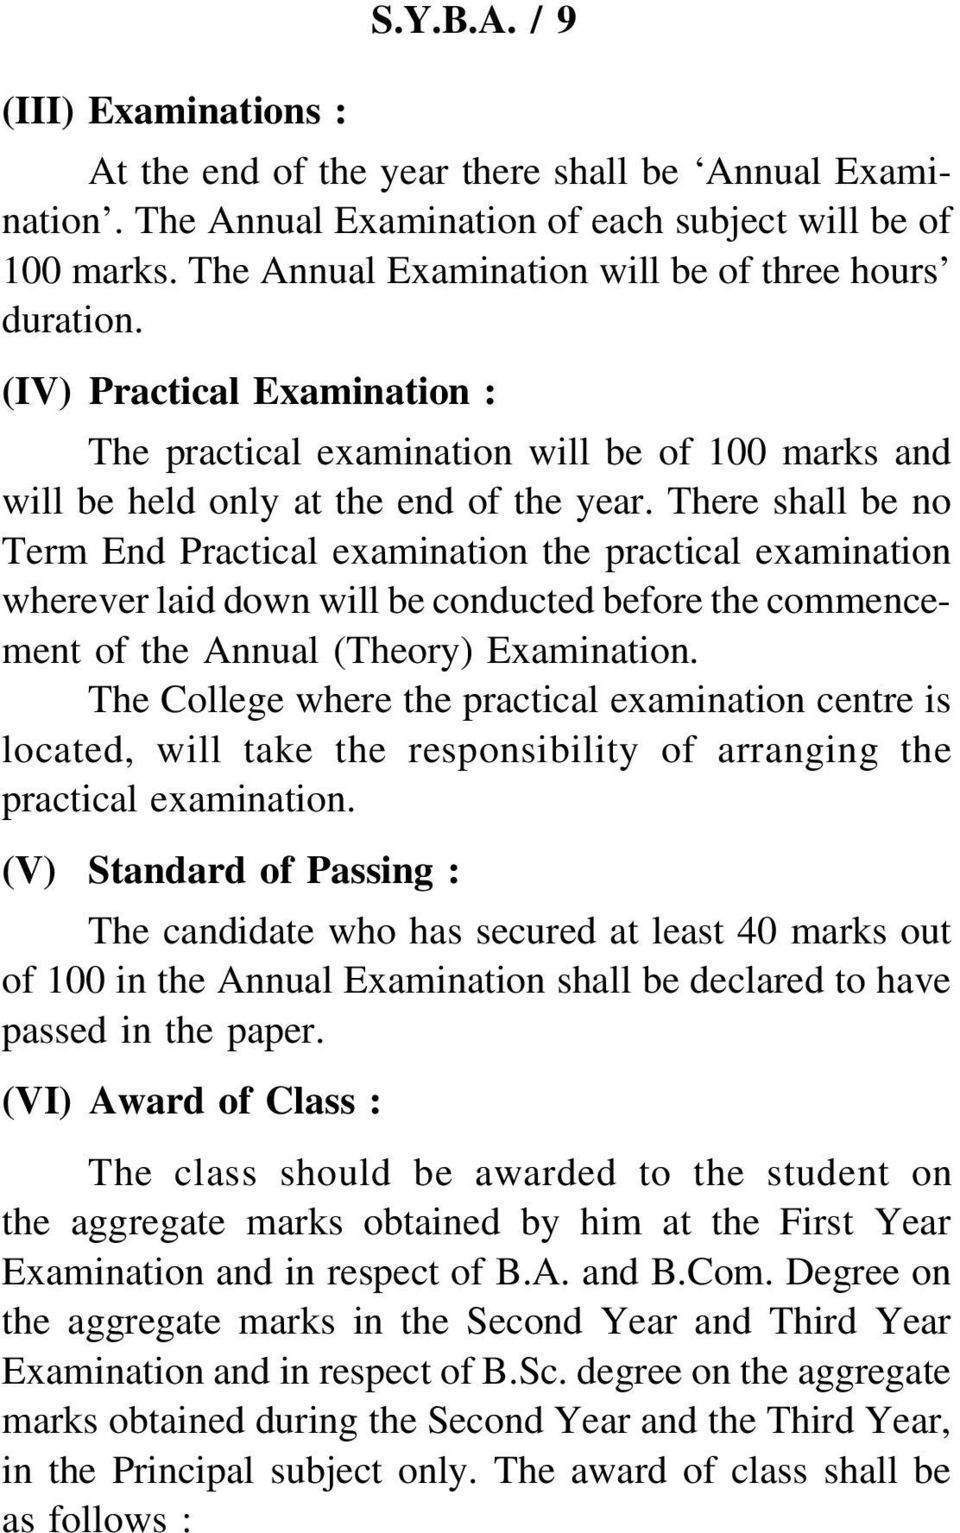 There shall be no Term End Practical examination the practical examination wherever laid down will be conducted before the commencement of the Annual (Theory) Examination.